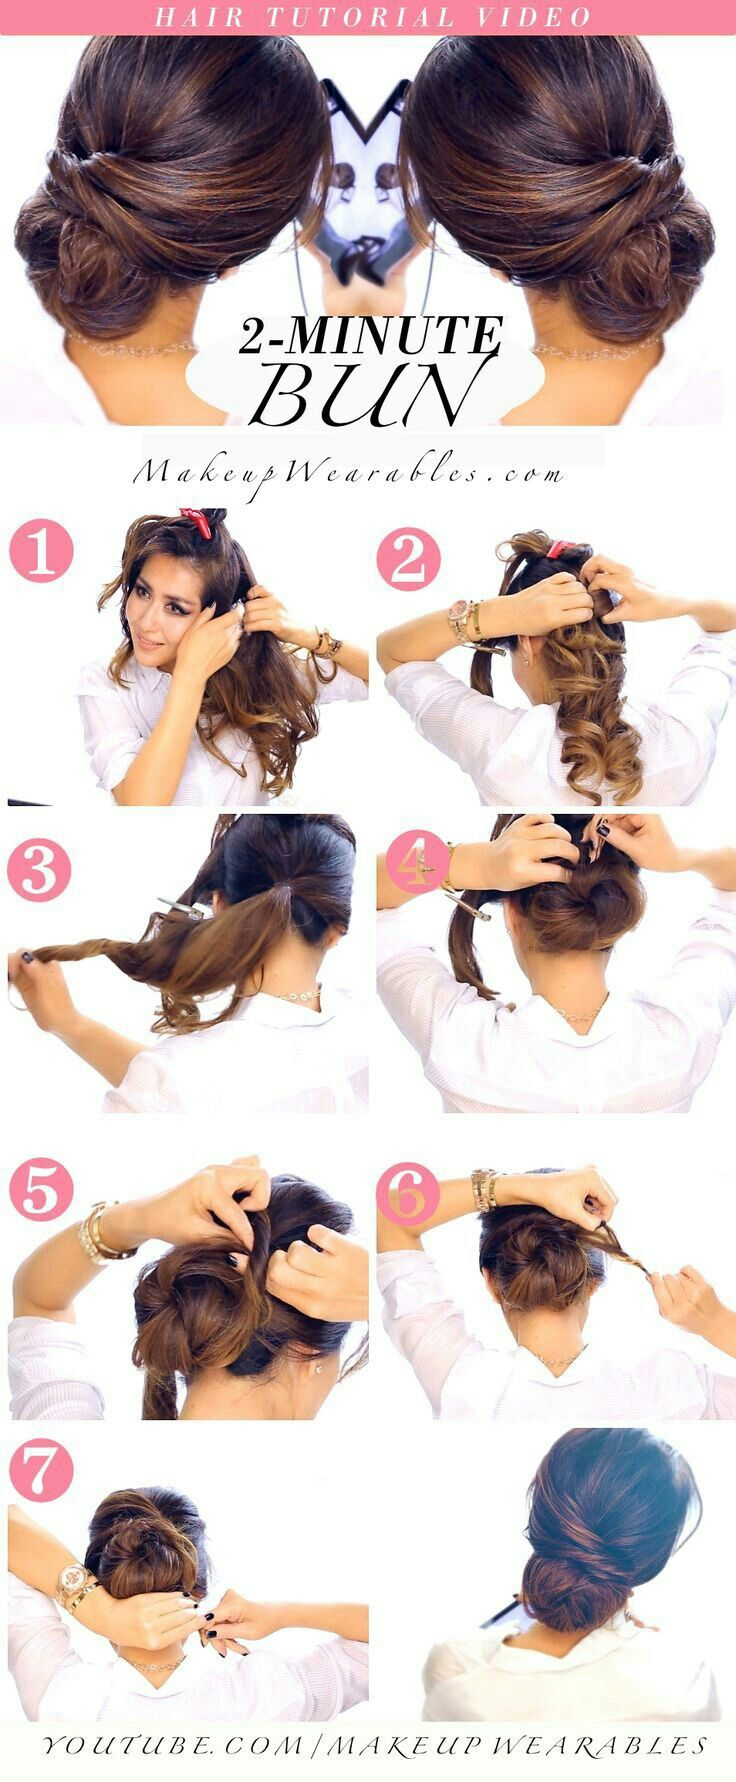 Pin by lillian rose on hairstyles u hair care pinterest